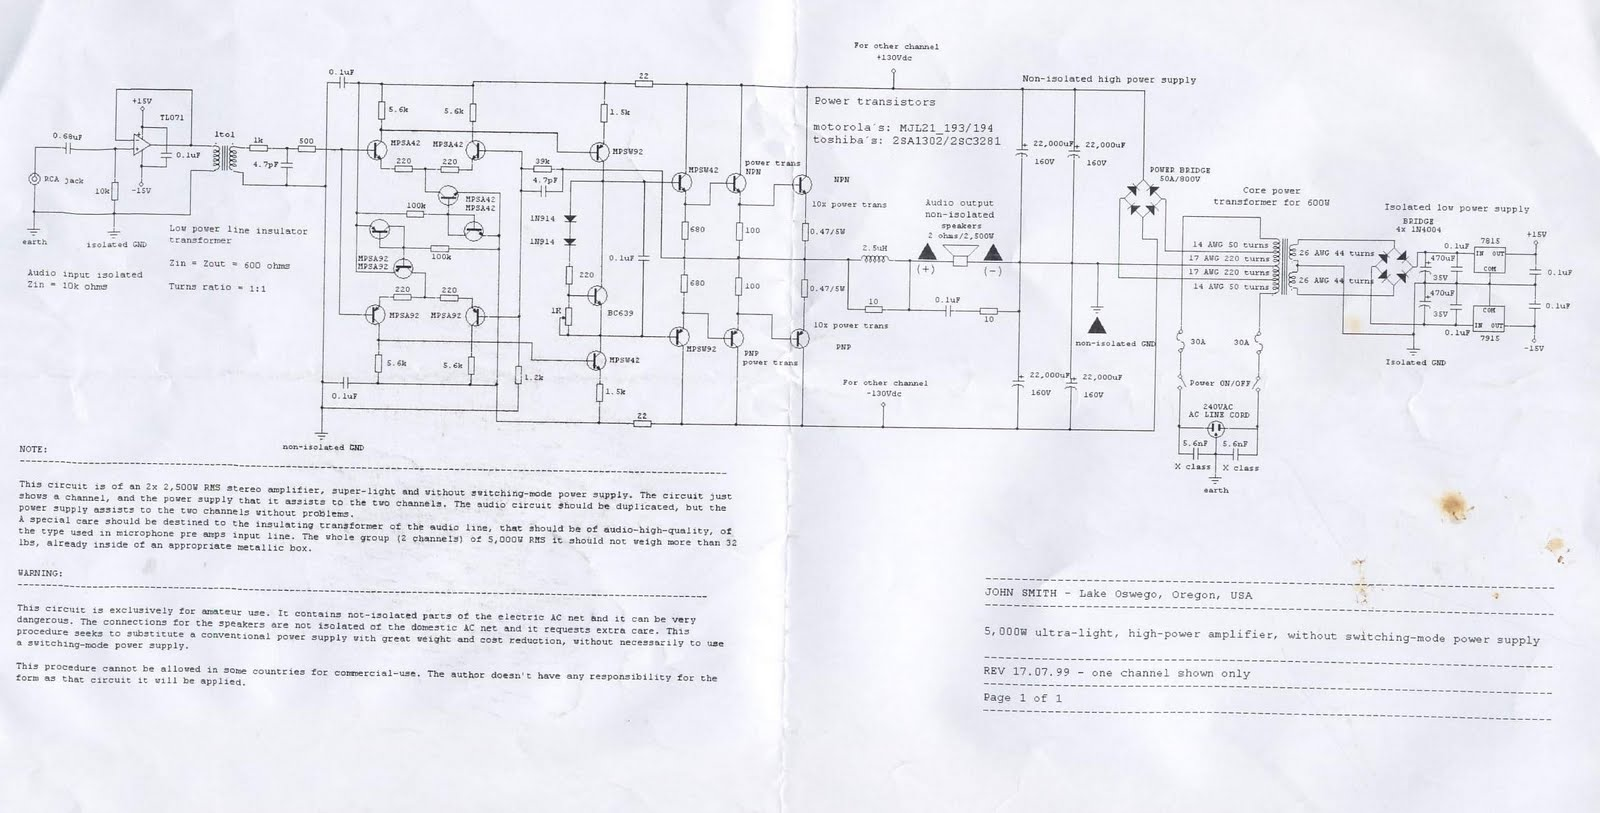 5000w high power amplifier circuit diagram schematic [ 1600 x 813 Pixel ]